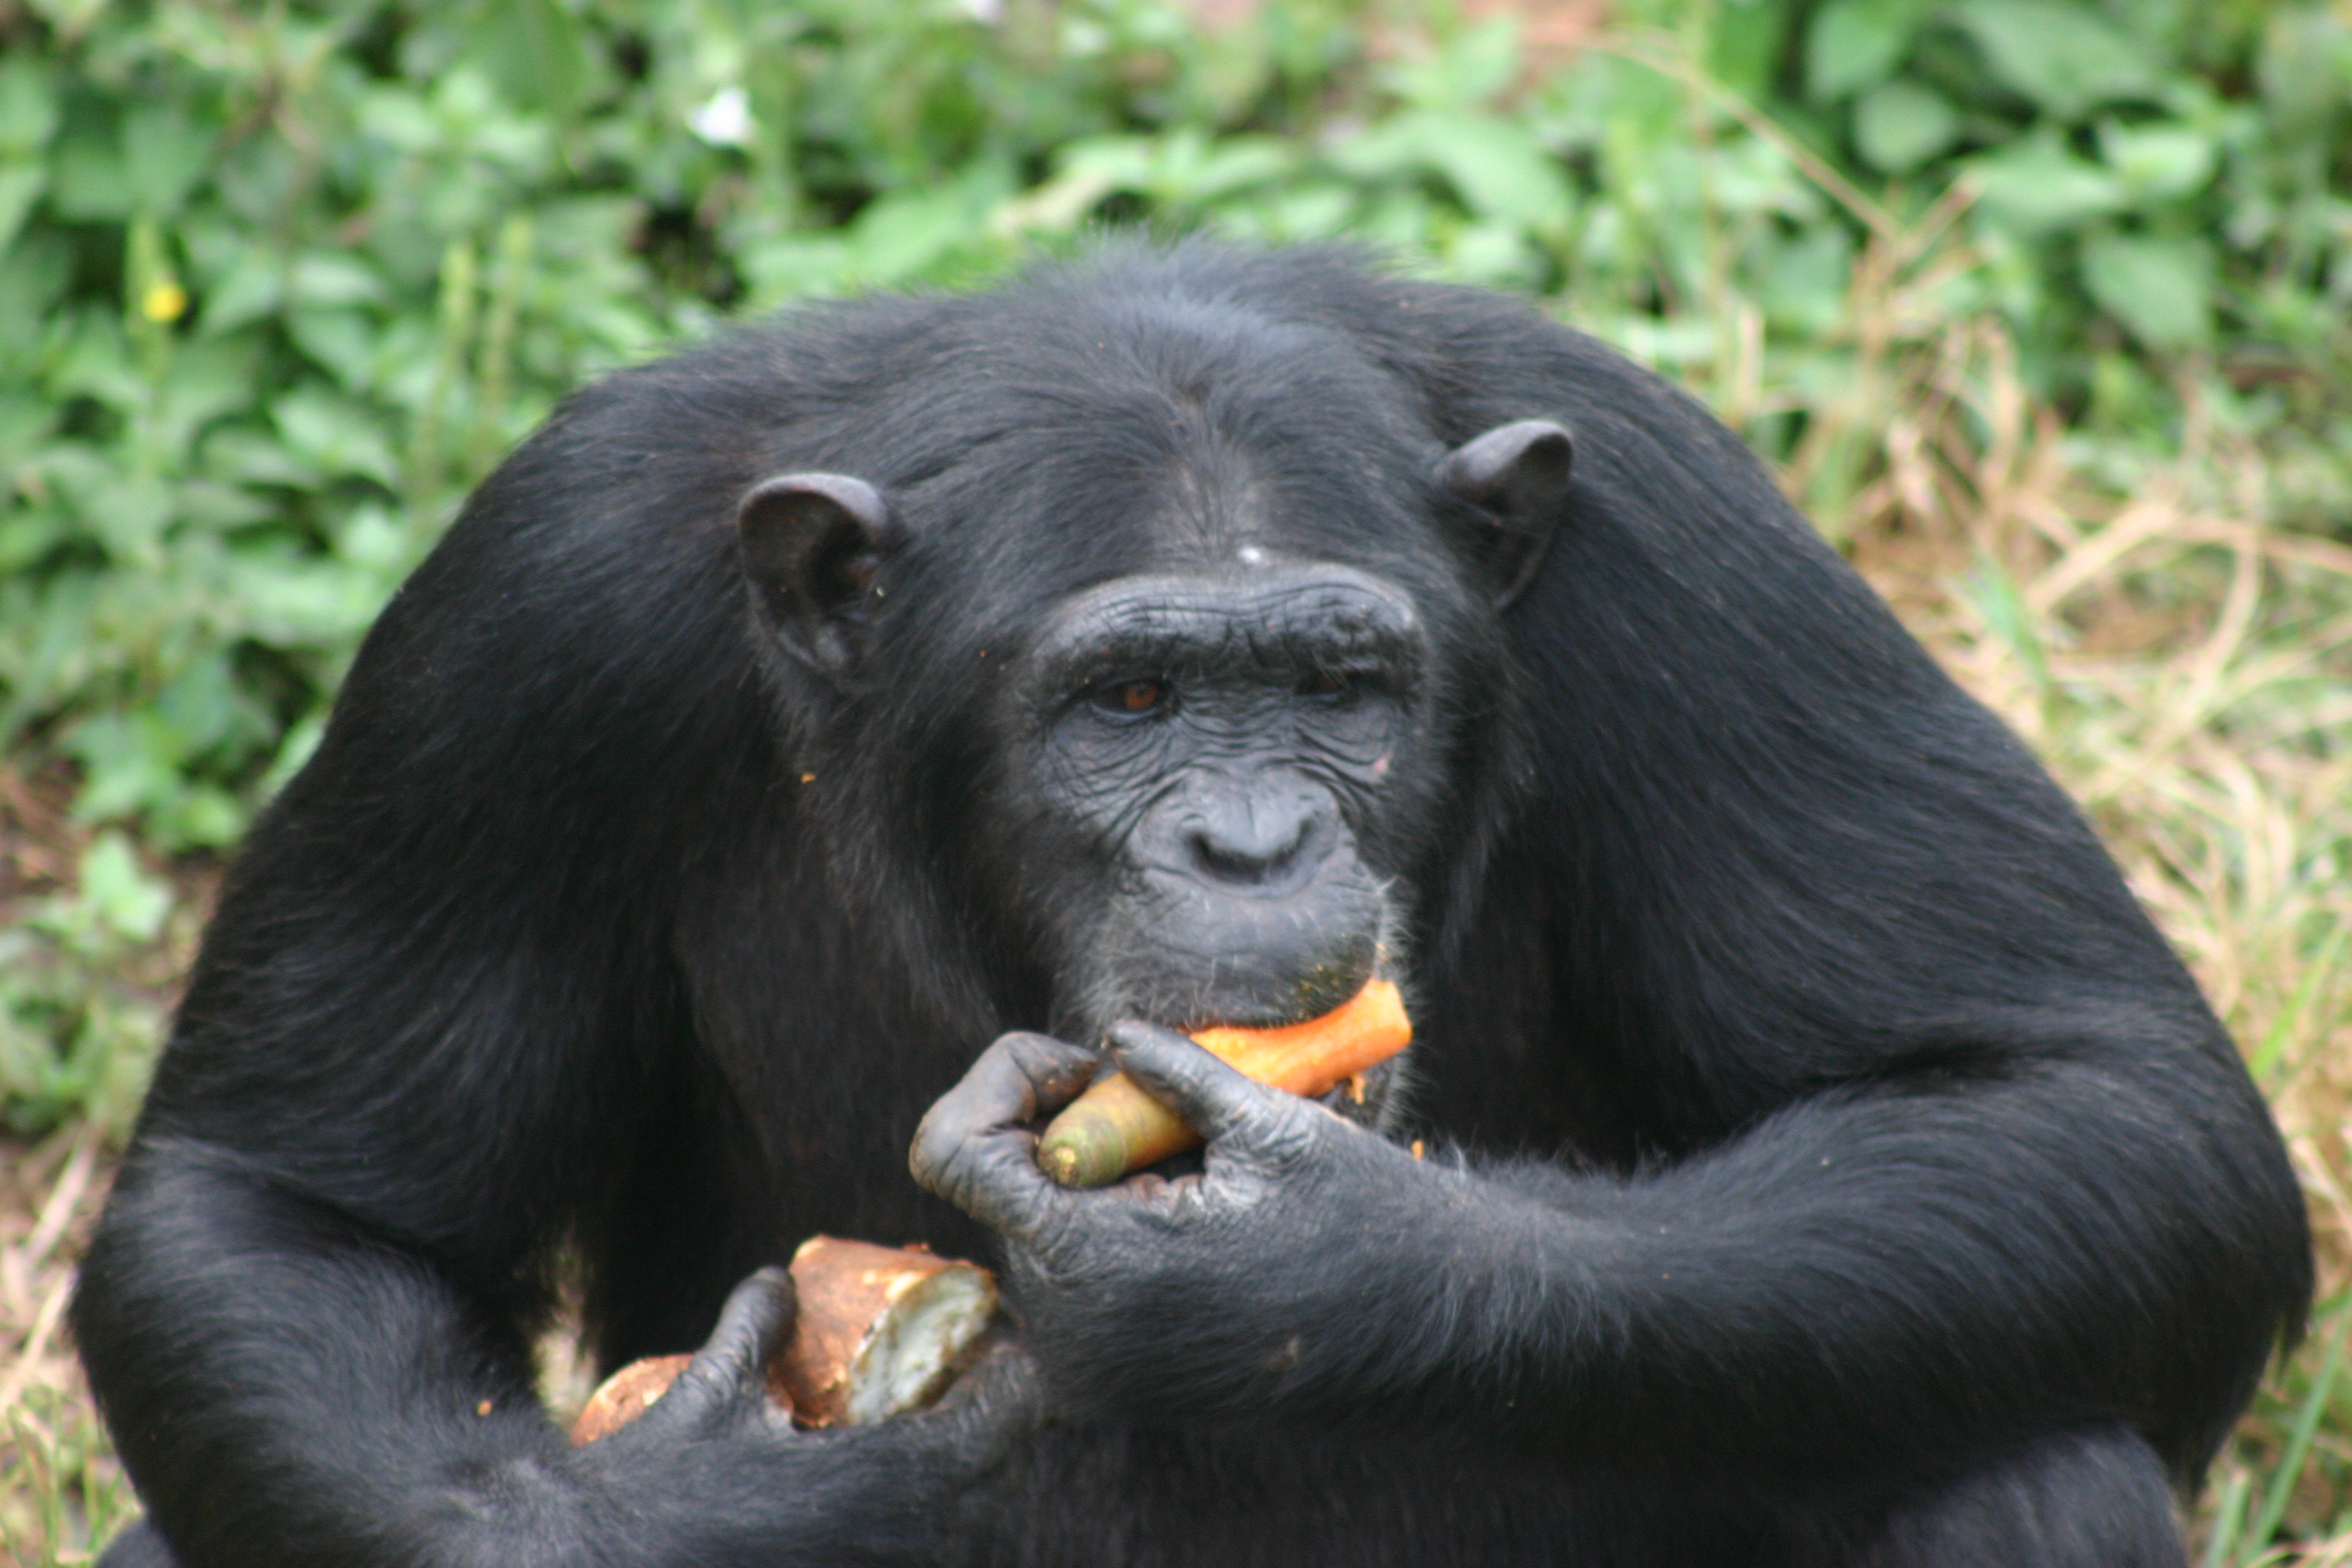 A chimpanzee chewing on fruits